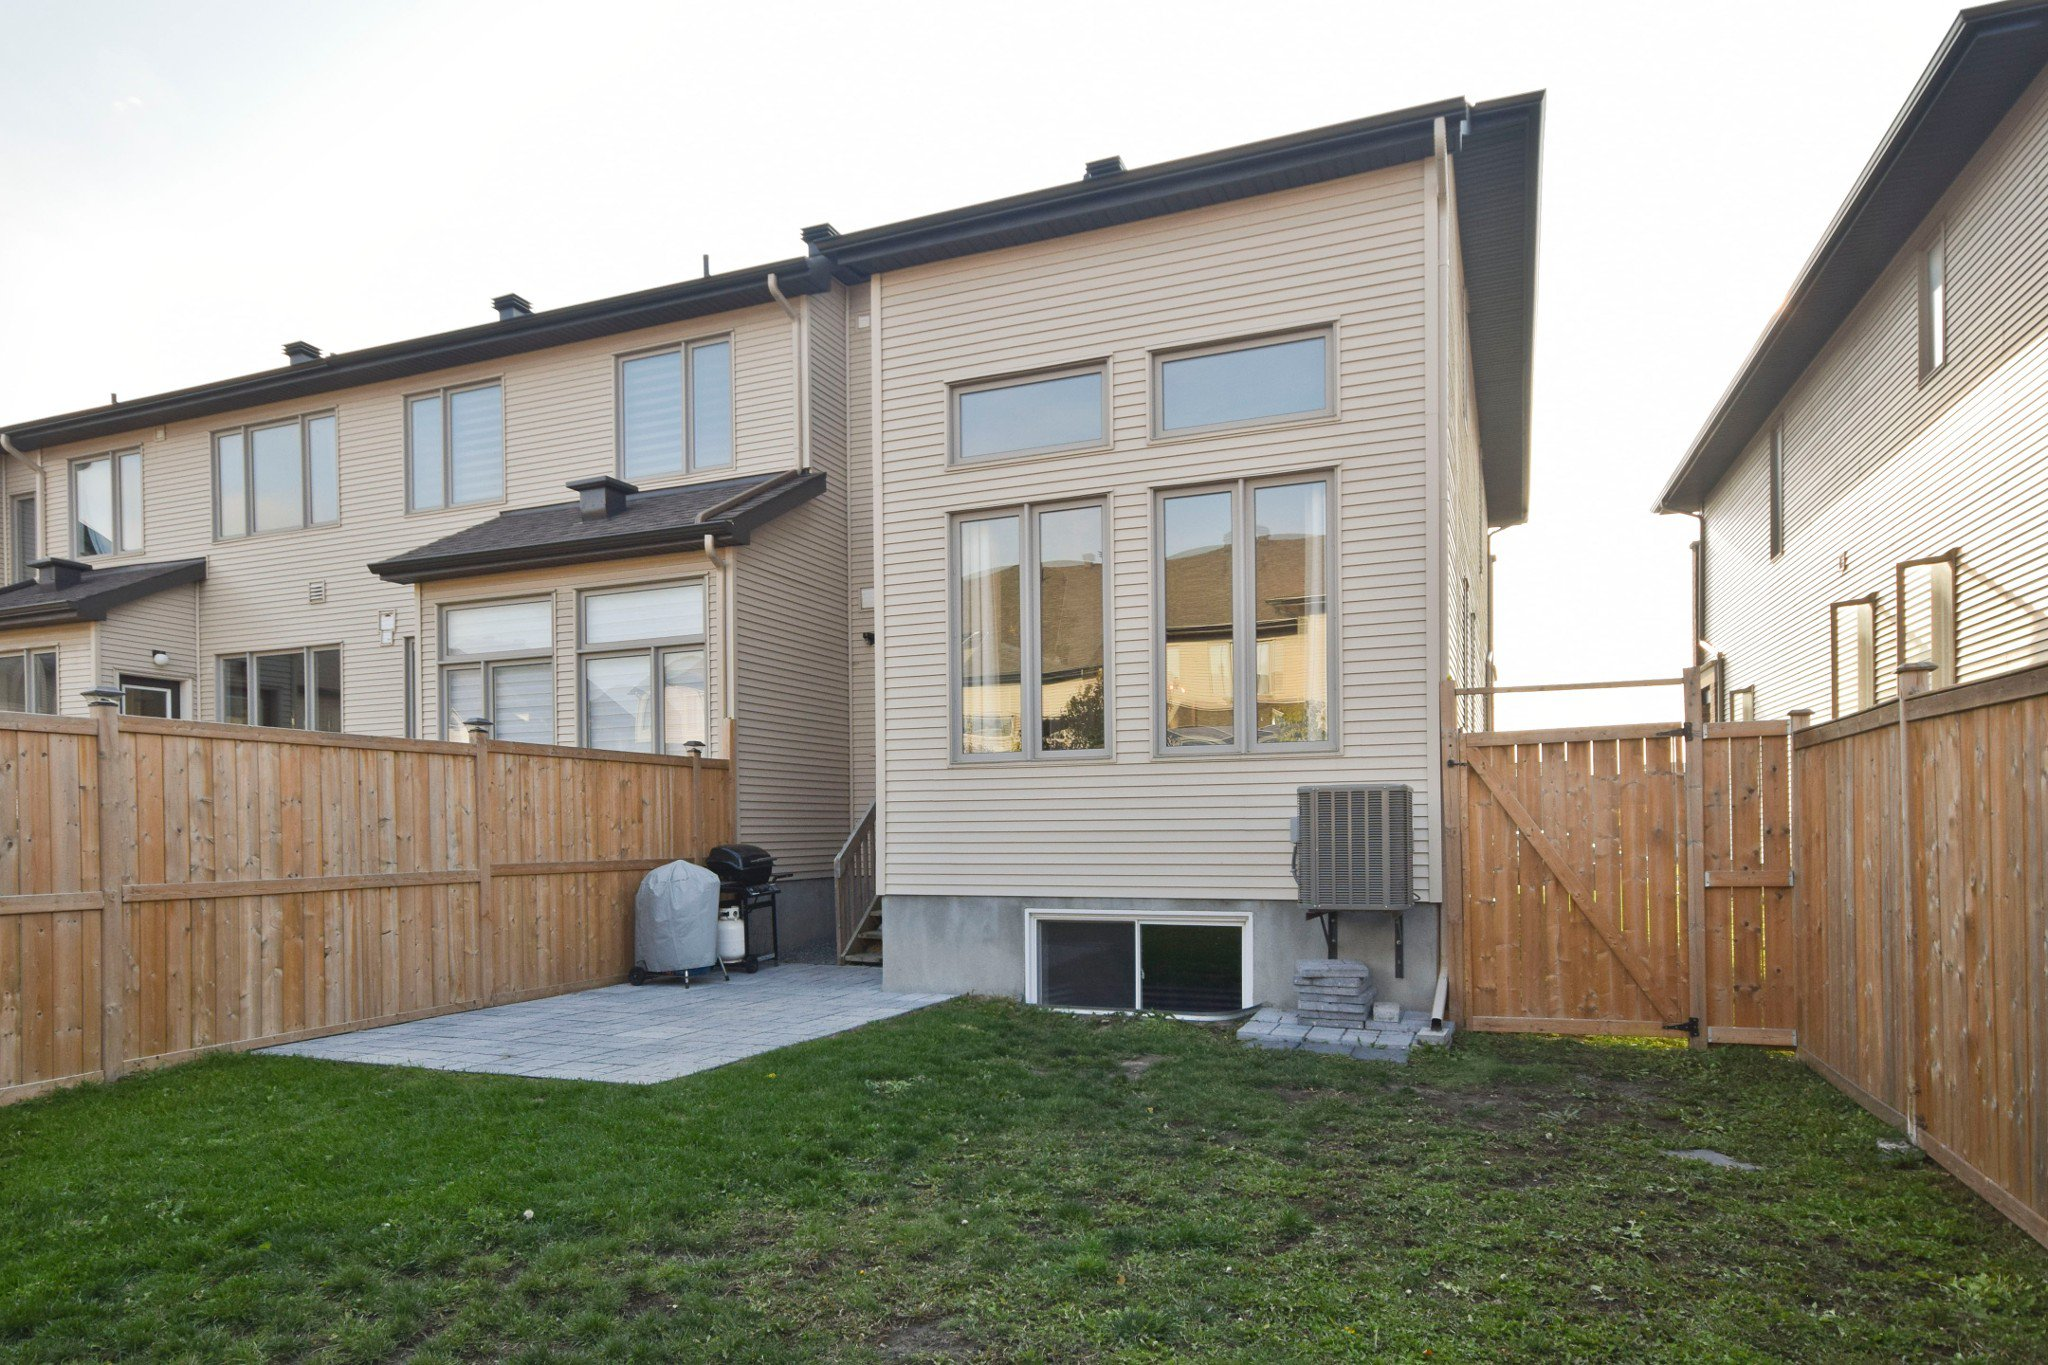 Photo 68: Photos: 131 Popplewell Crescent in Ottawa: Cedargrove / Fraserdale House for sale (Barrhaven)  : MLS®# 1130335